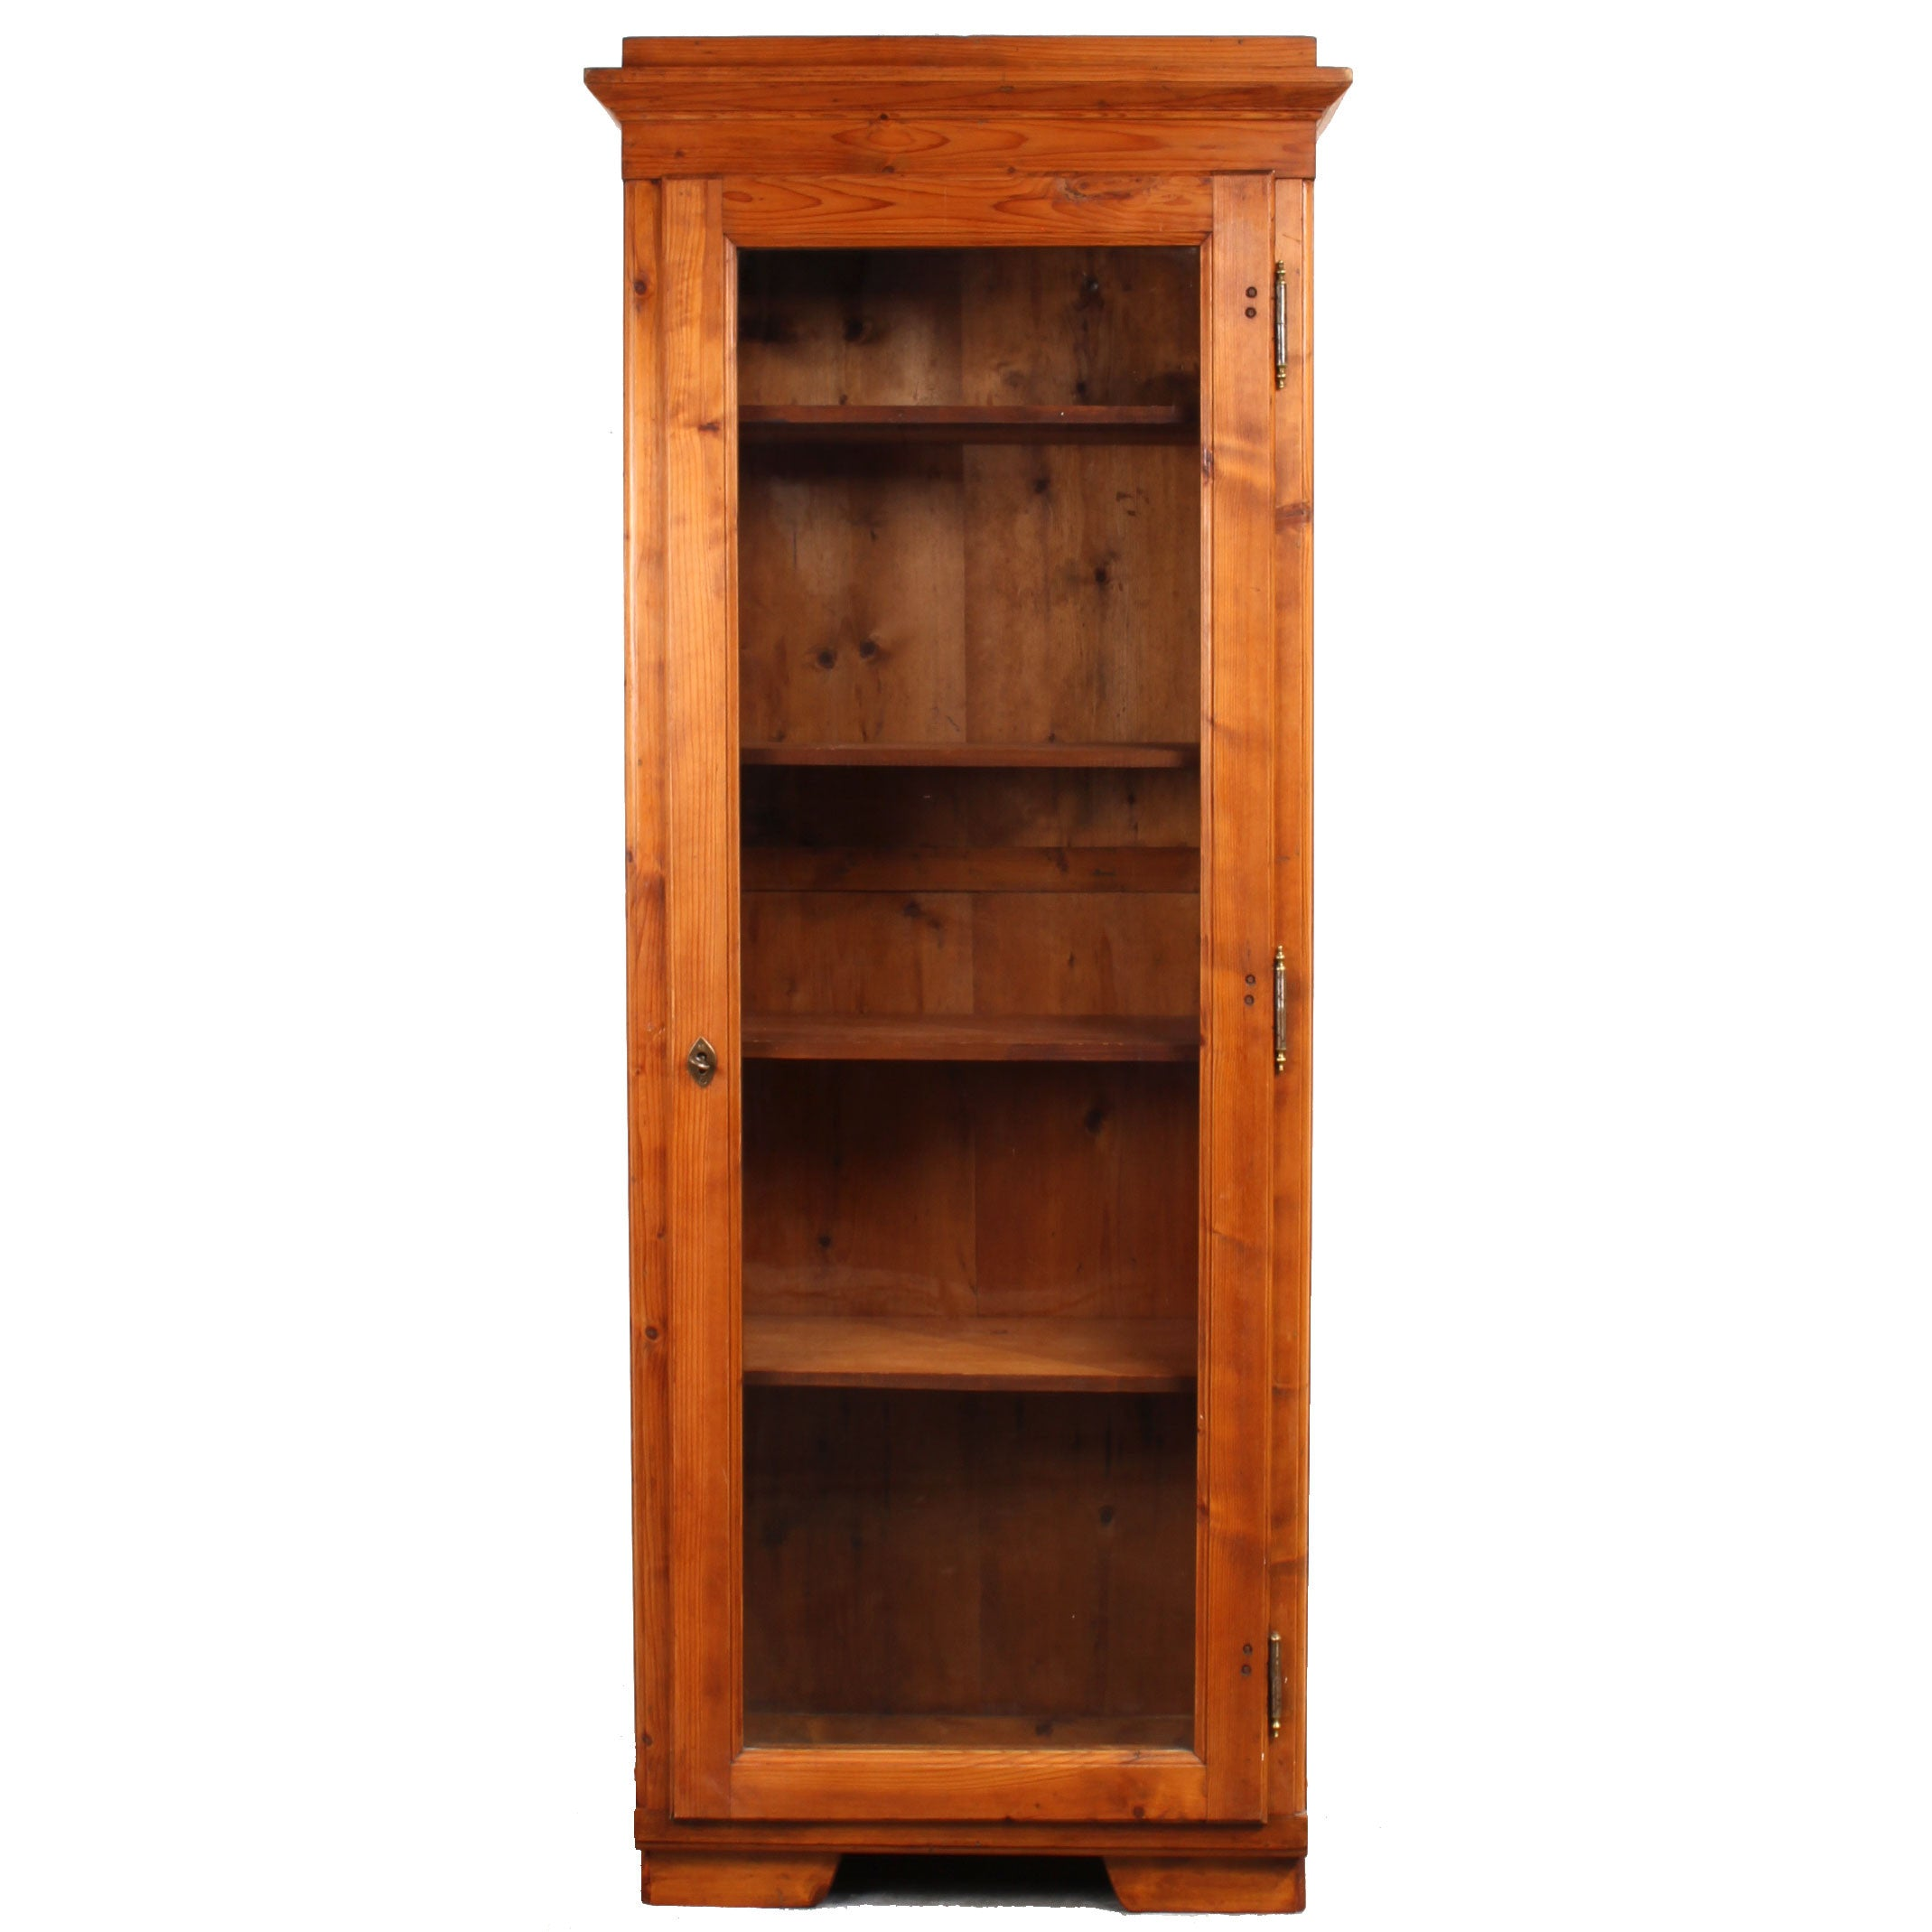 sensational inch remodel cabinets inspiration tall bookcases ideas decor with cozy high doors lovely wide and bobsrug furniture home bookcase small